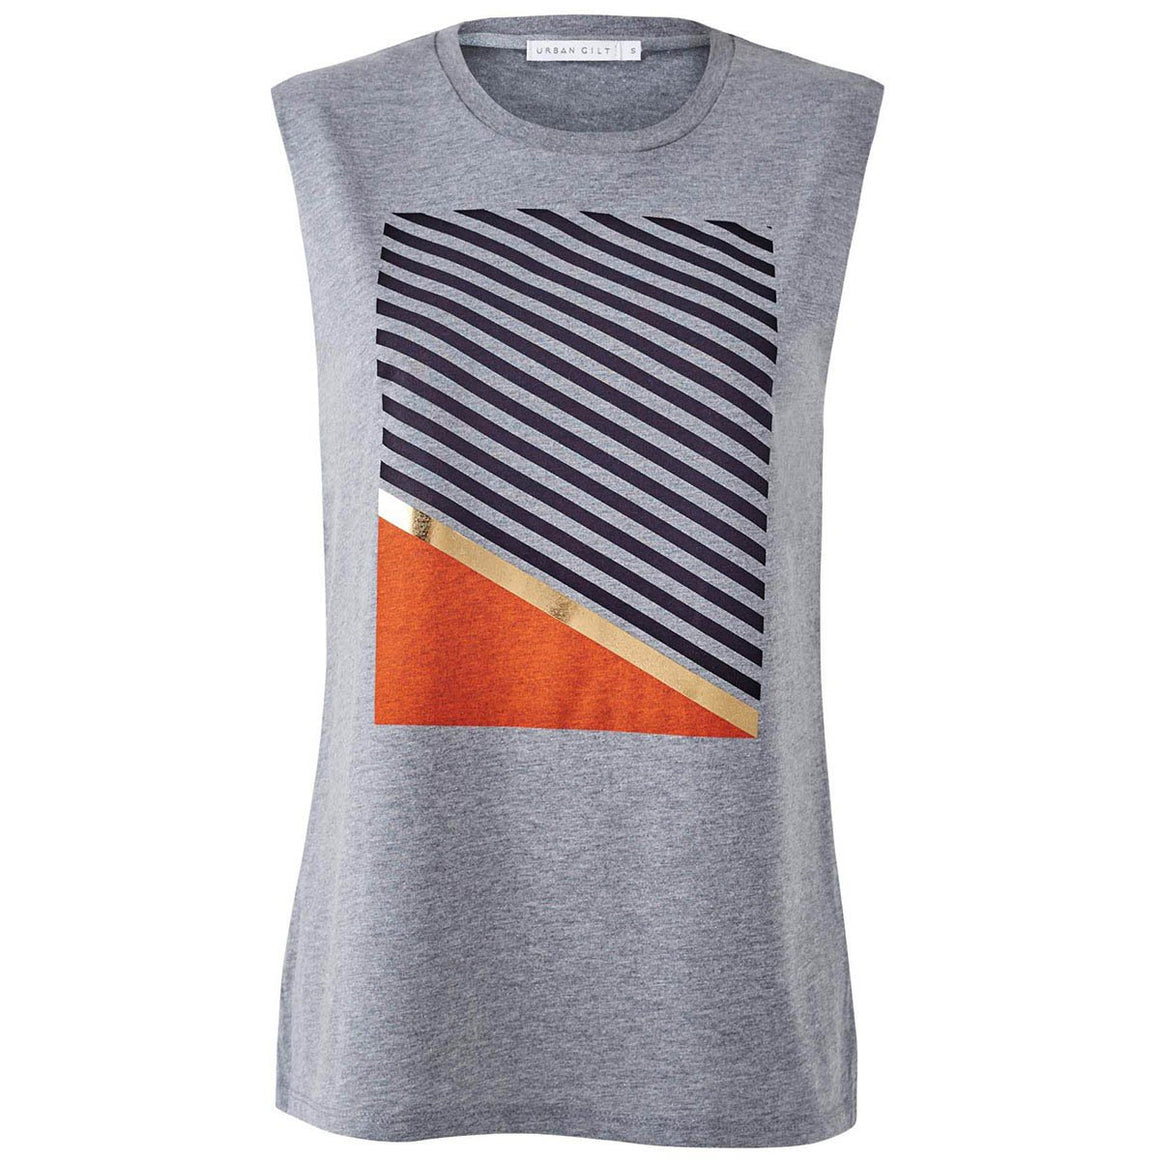 Ledbury Grey Chic Minimalist Style Top Front View